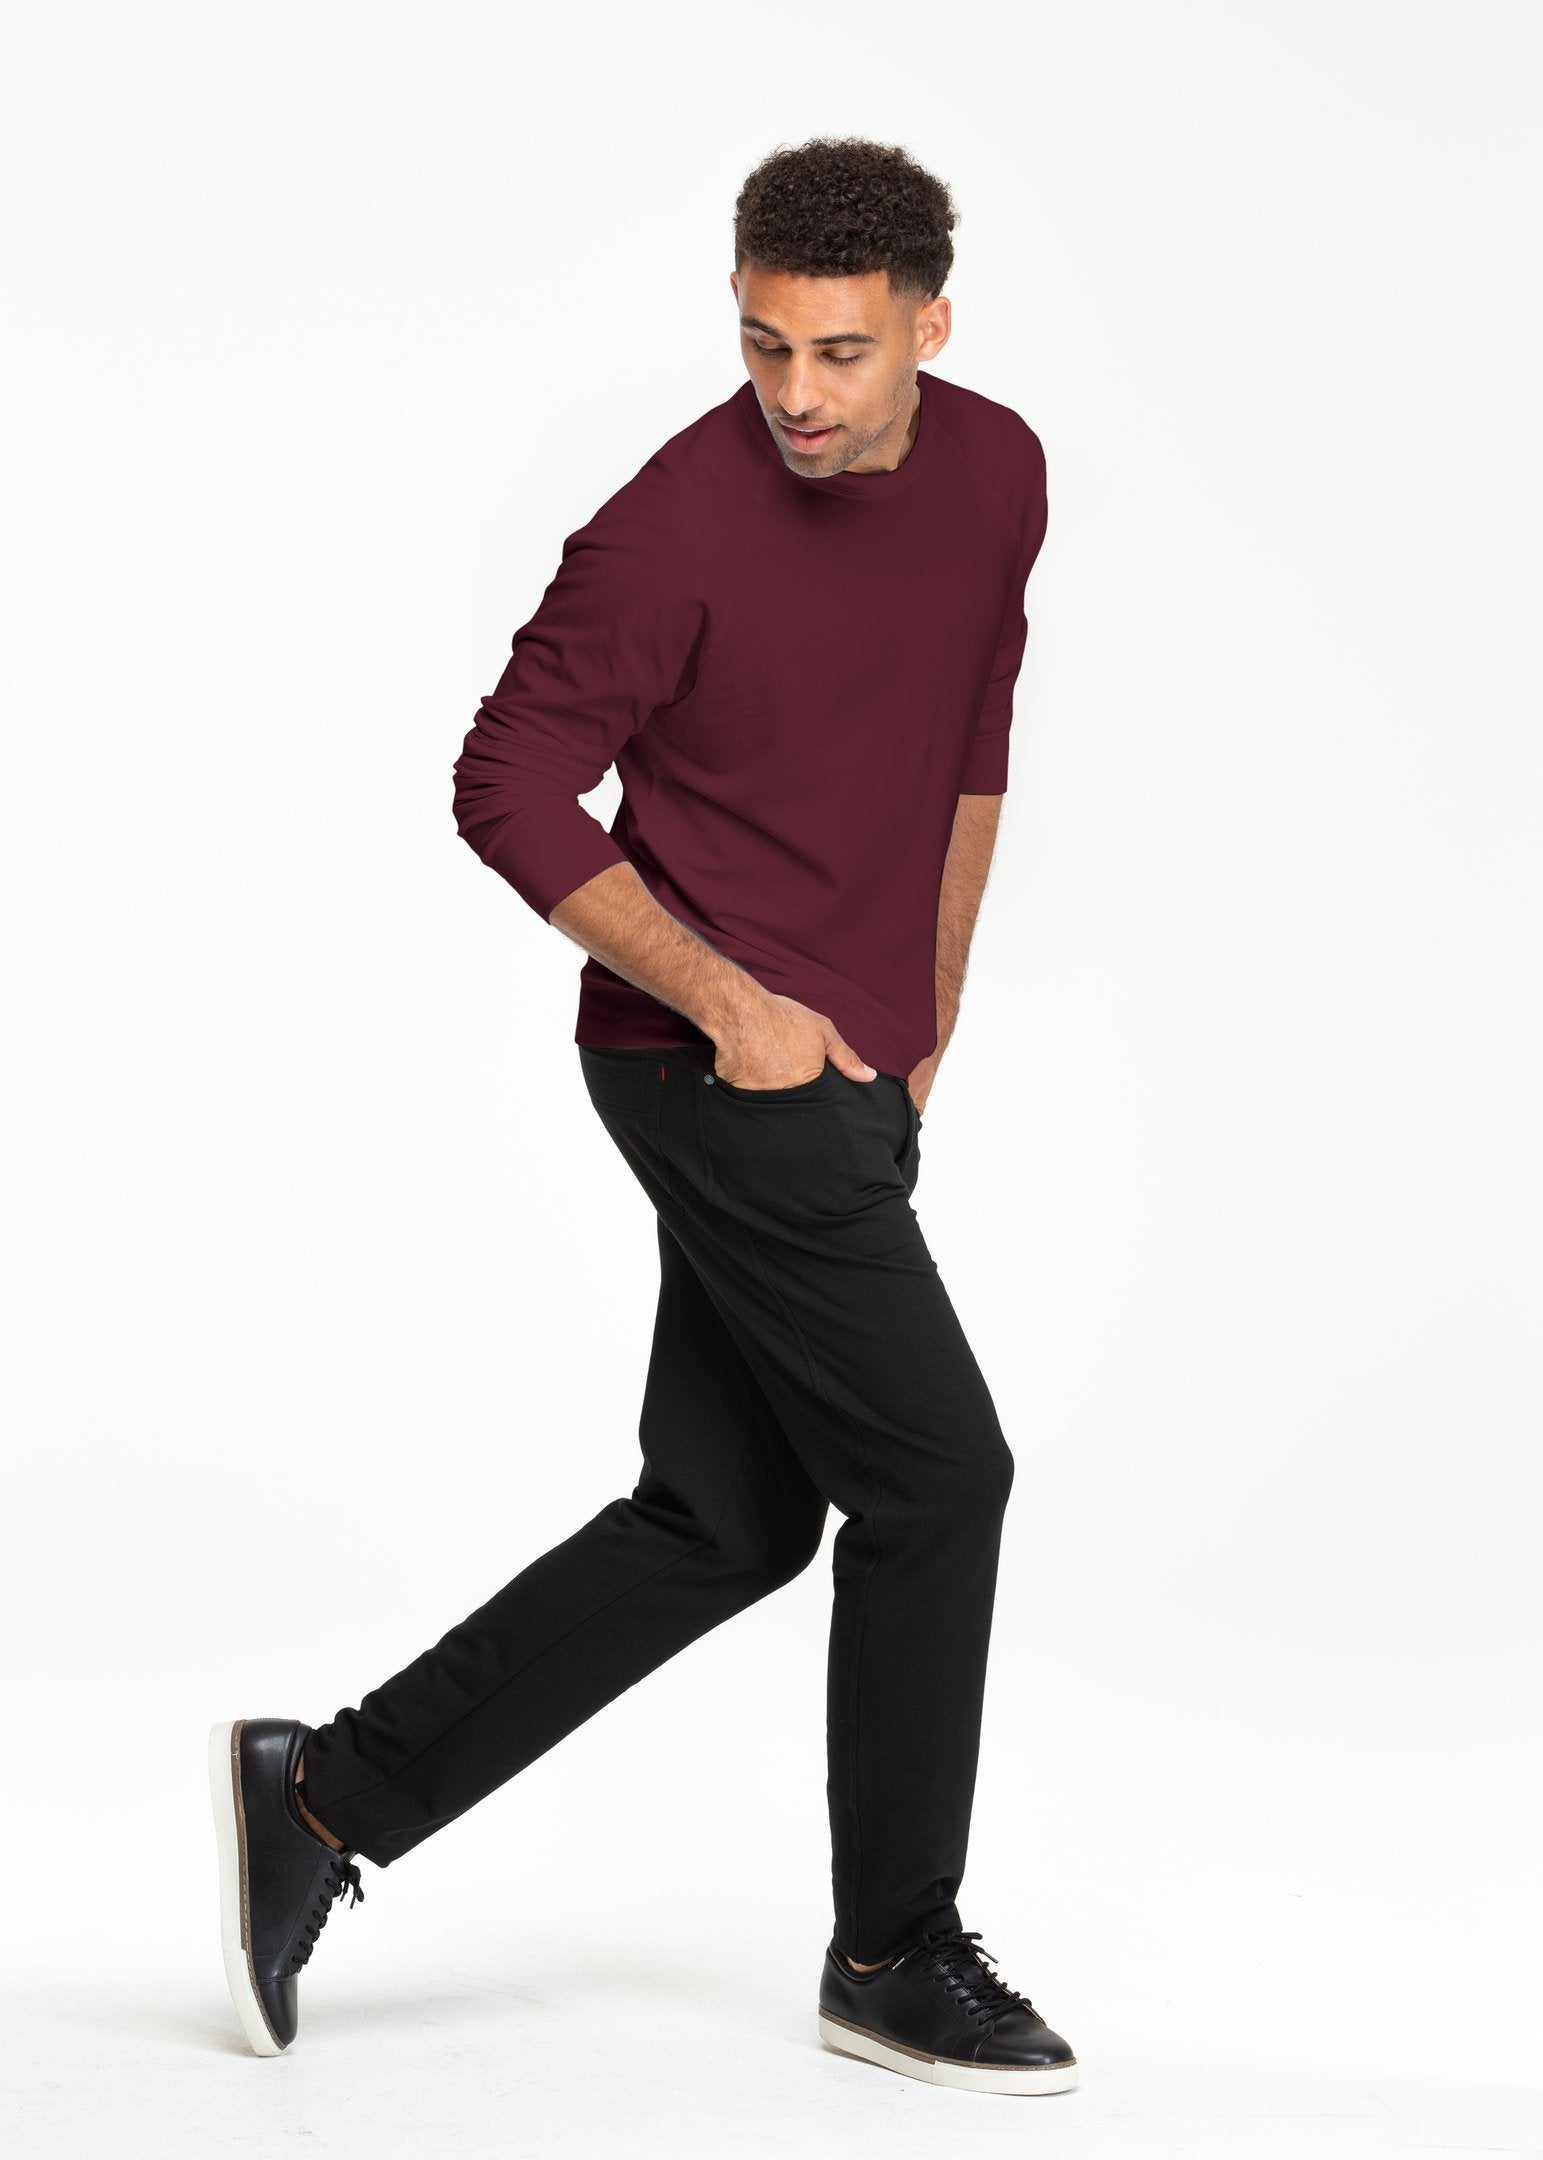 SWET-Shirt | Oxblood - Sweat Tailor